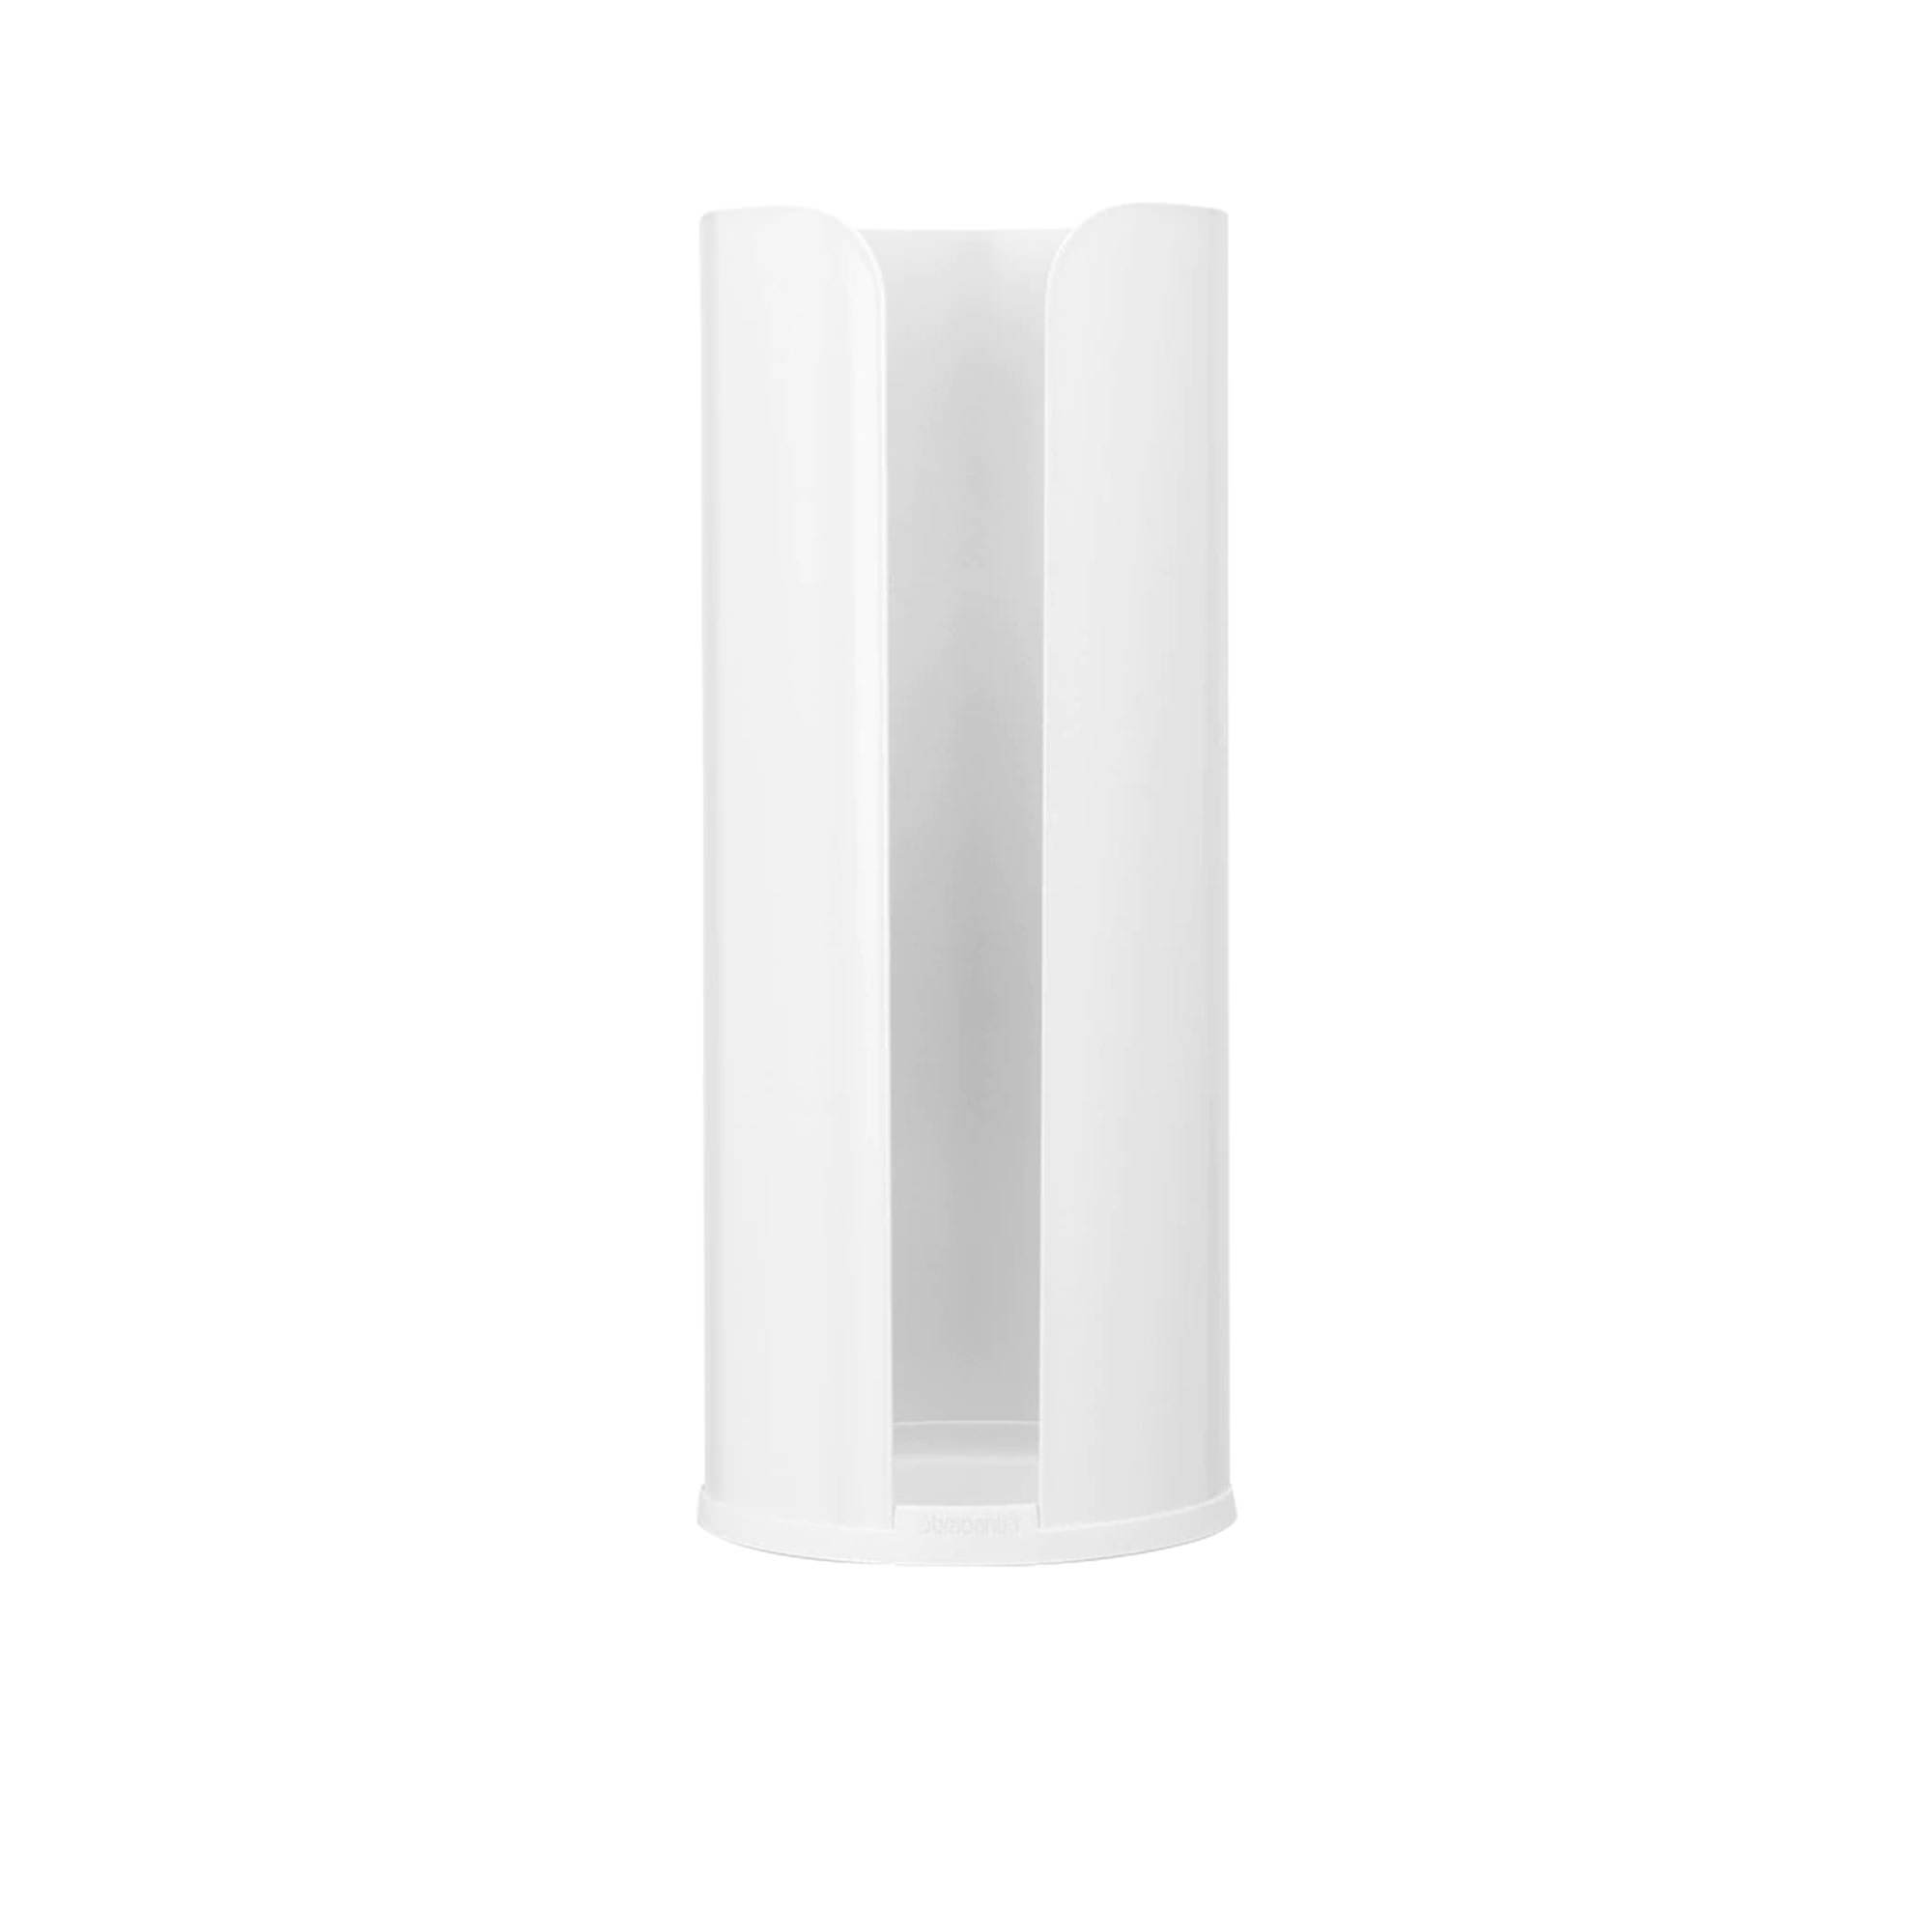 Brabantia Toilet Paper Roll Holder White